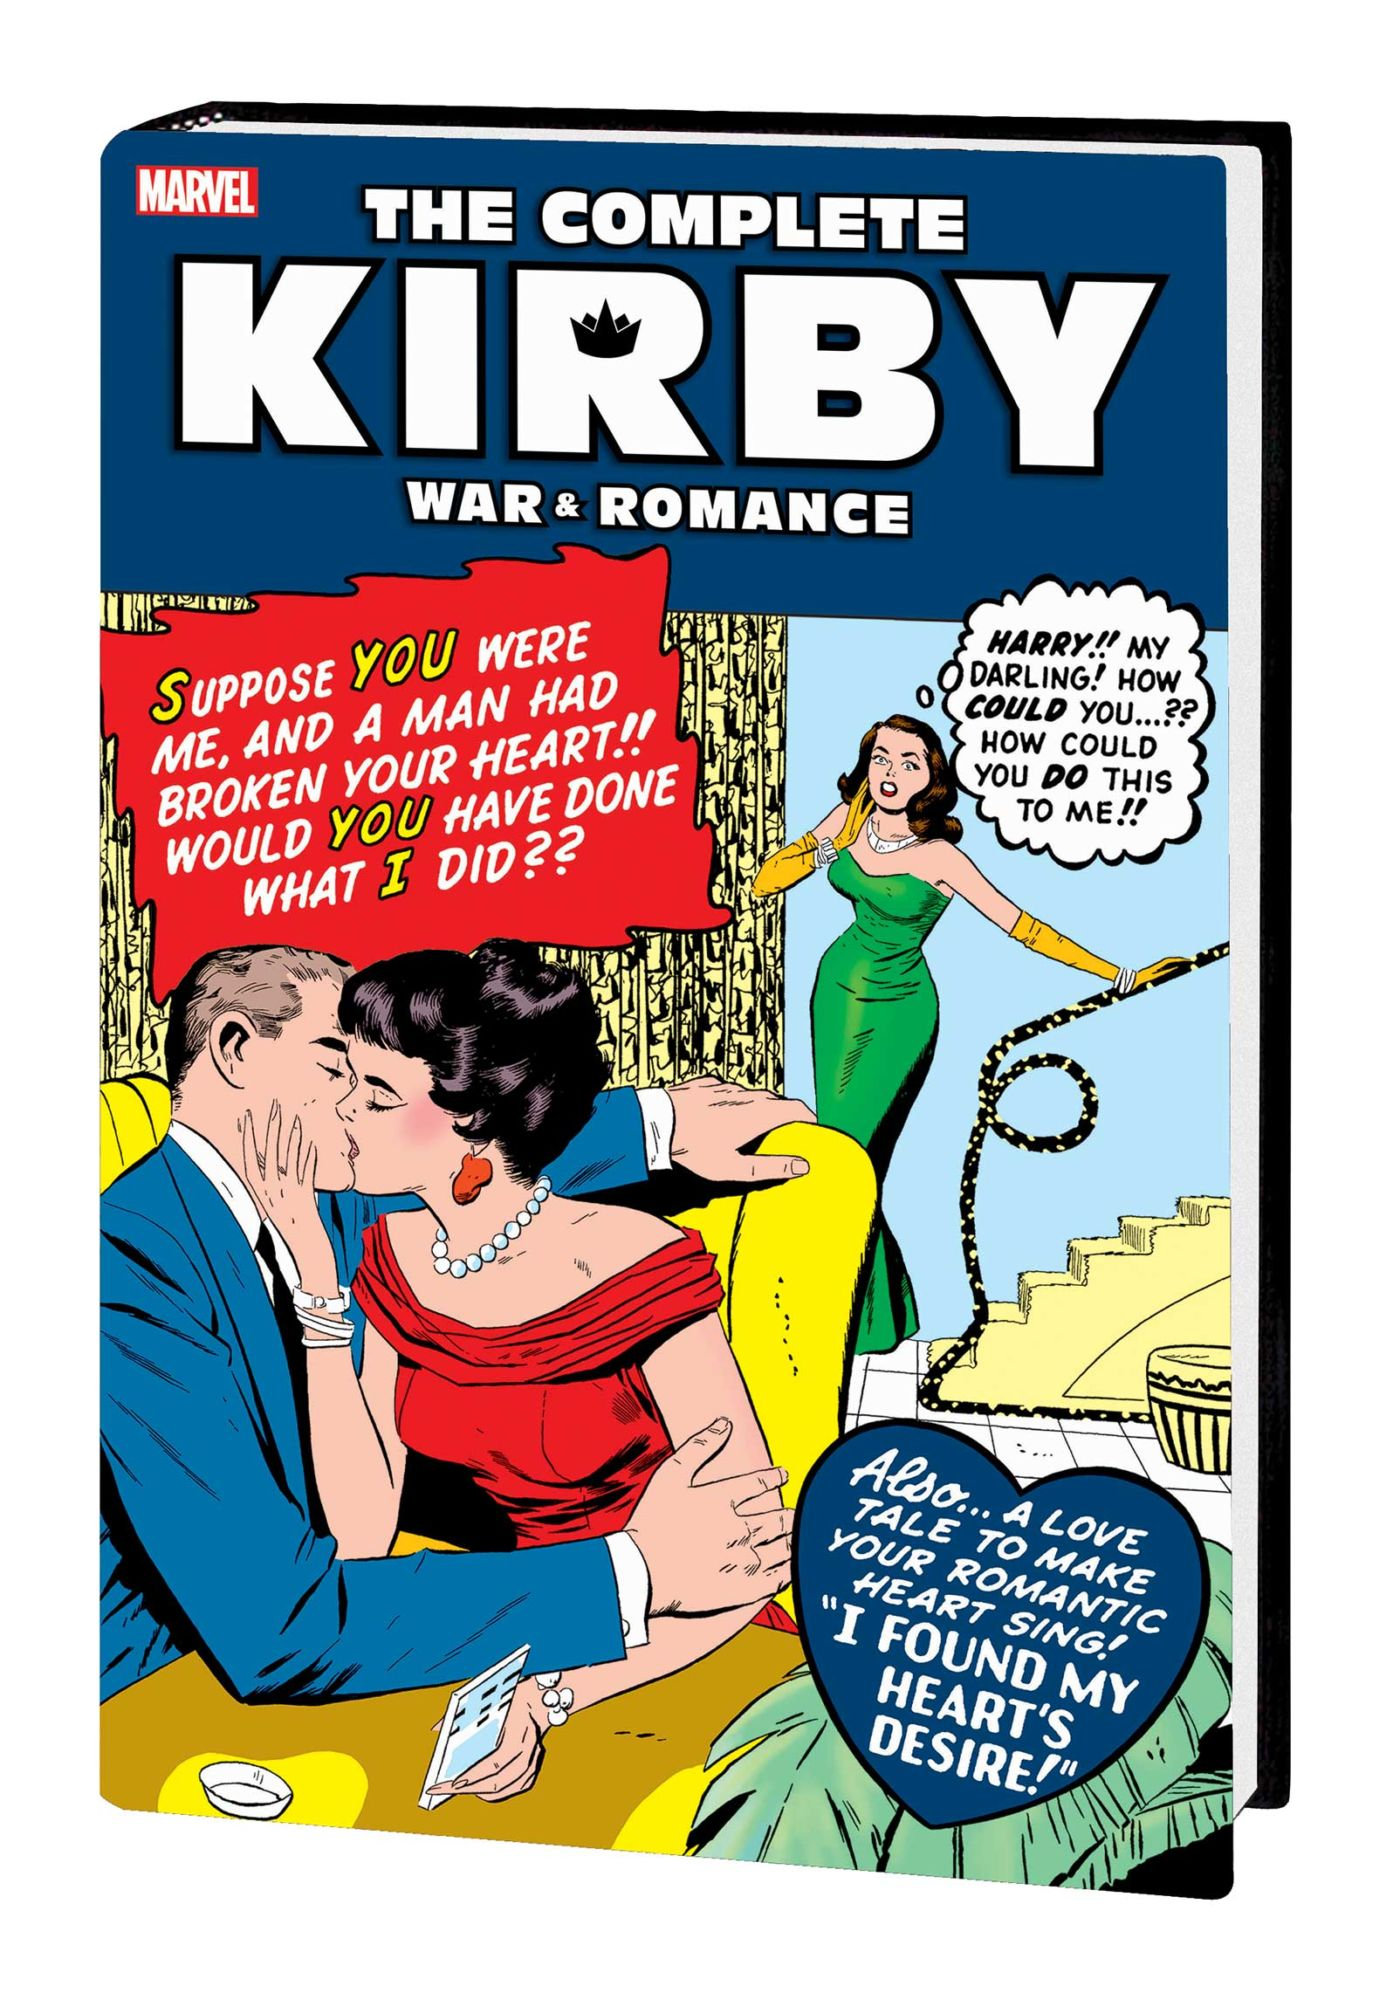 Marvel Publish Complete Jack Kirby War And Romance – Almost?